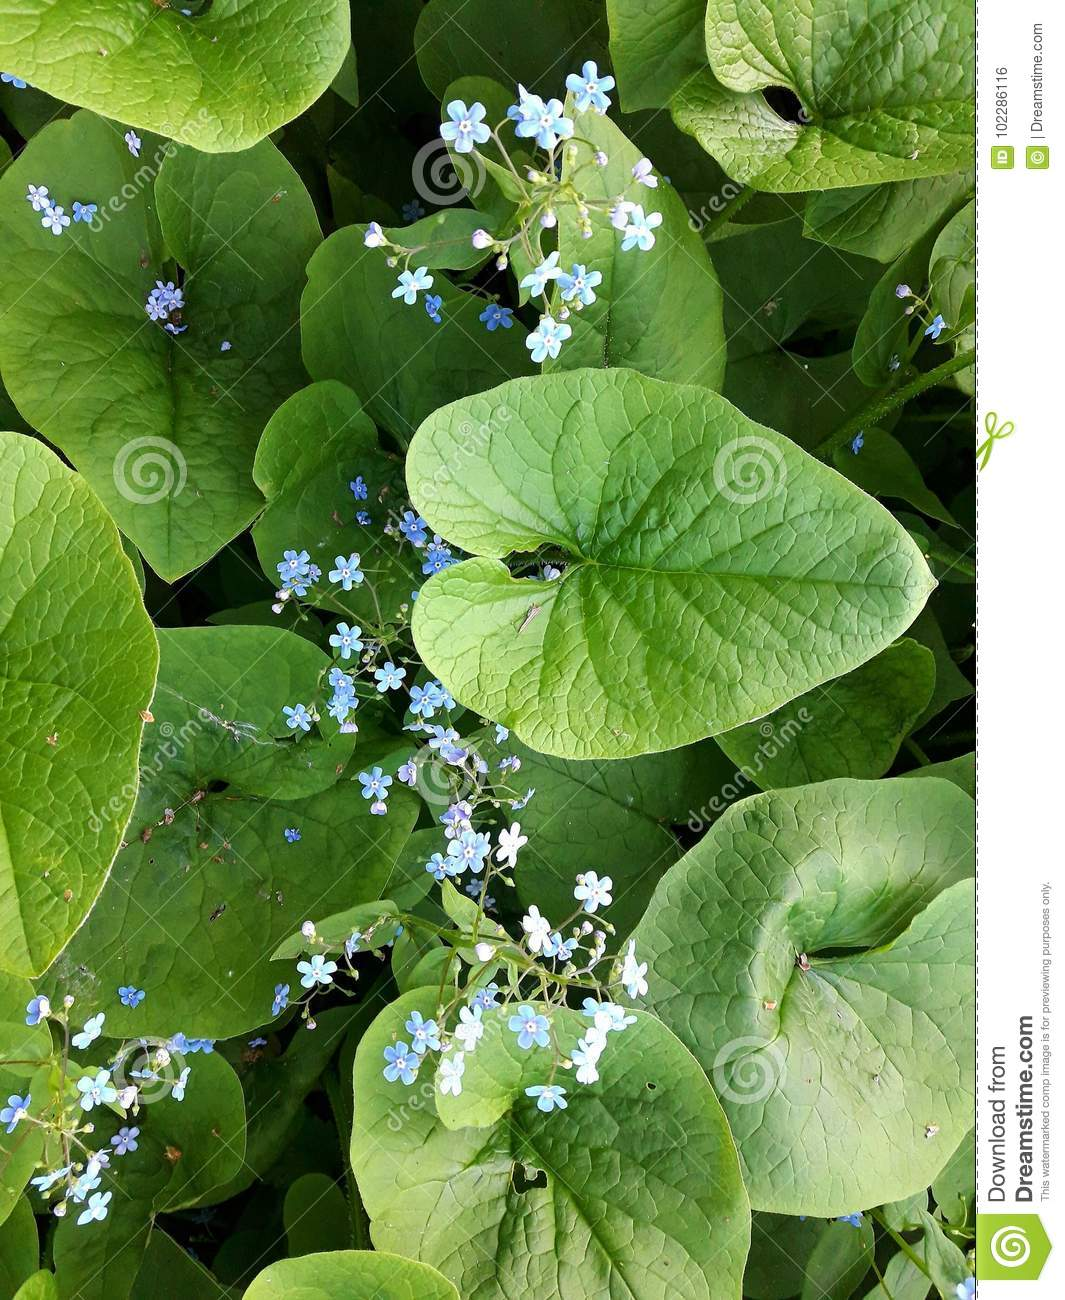 White And Blue Flowers Stock Photo Image Of Small Leaves 102286116